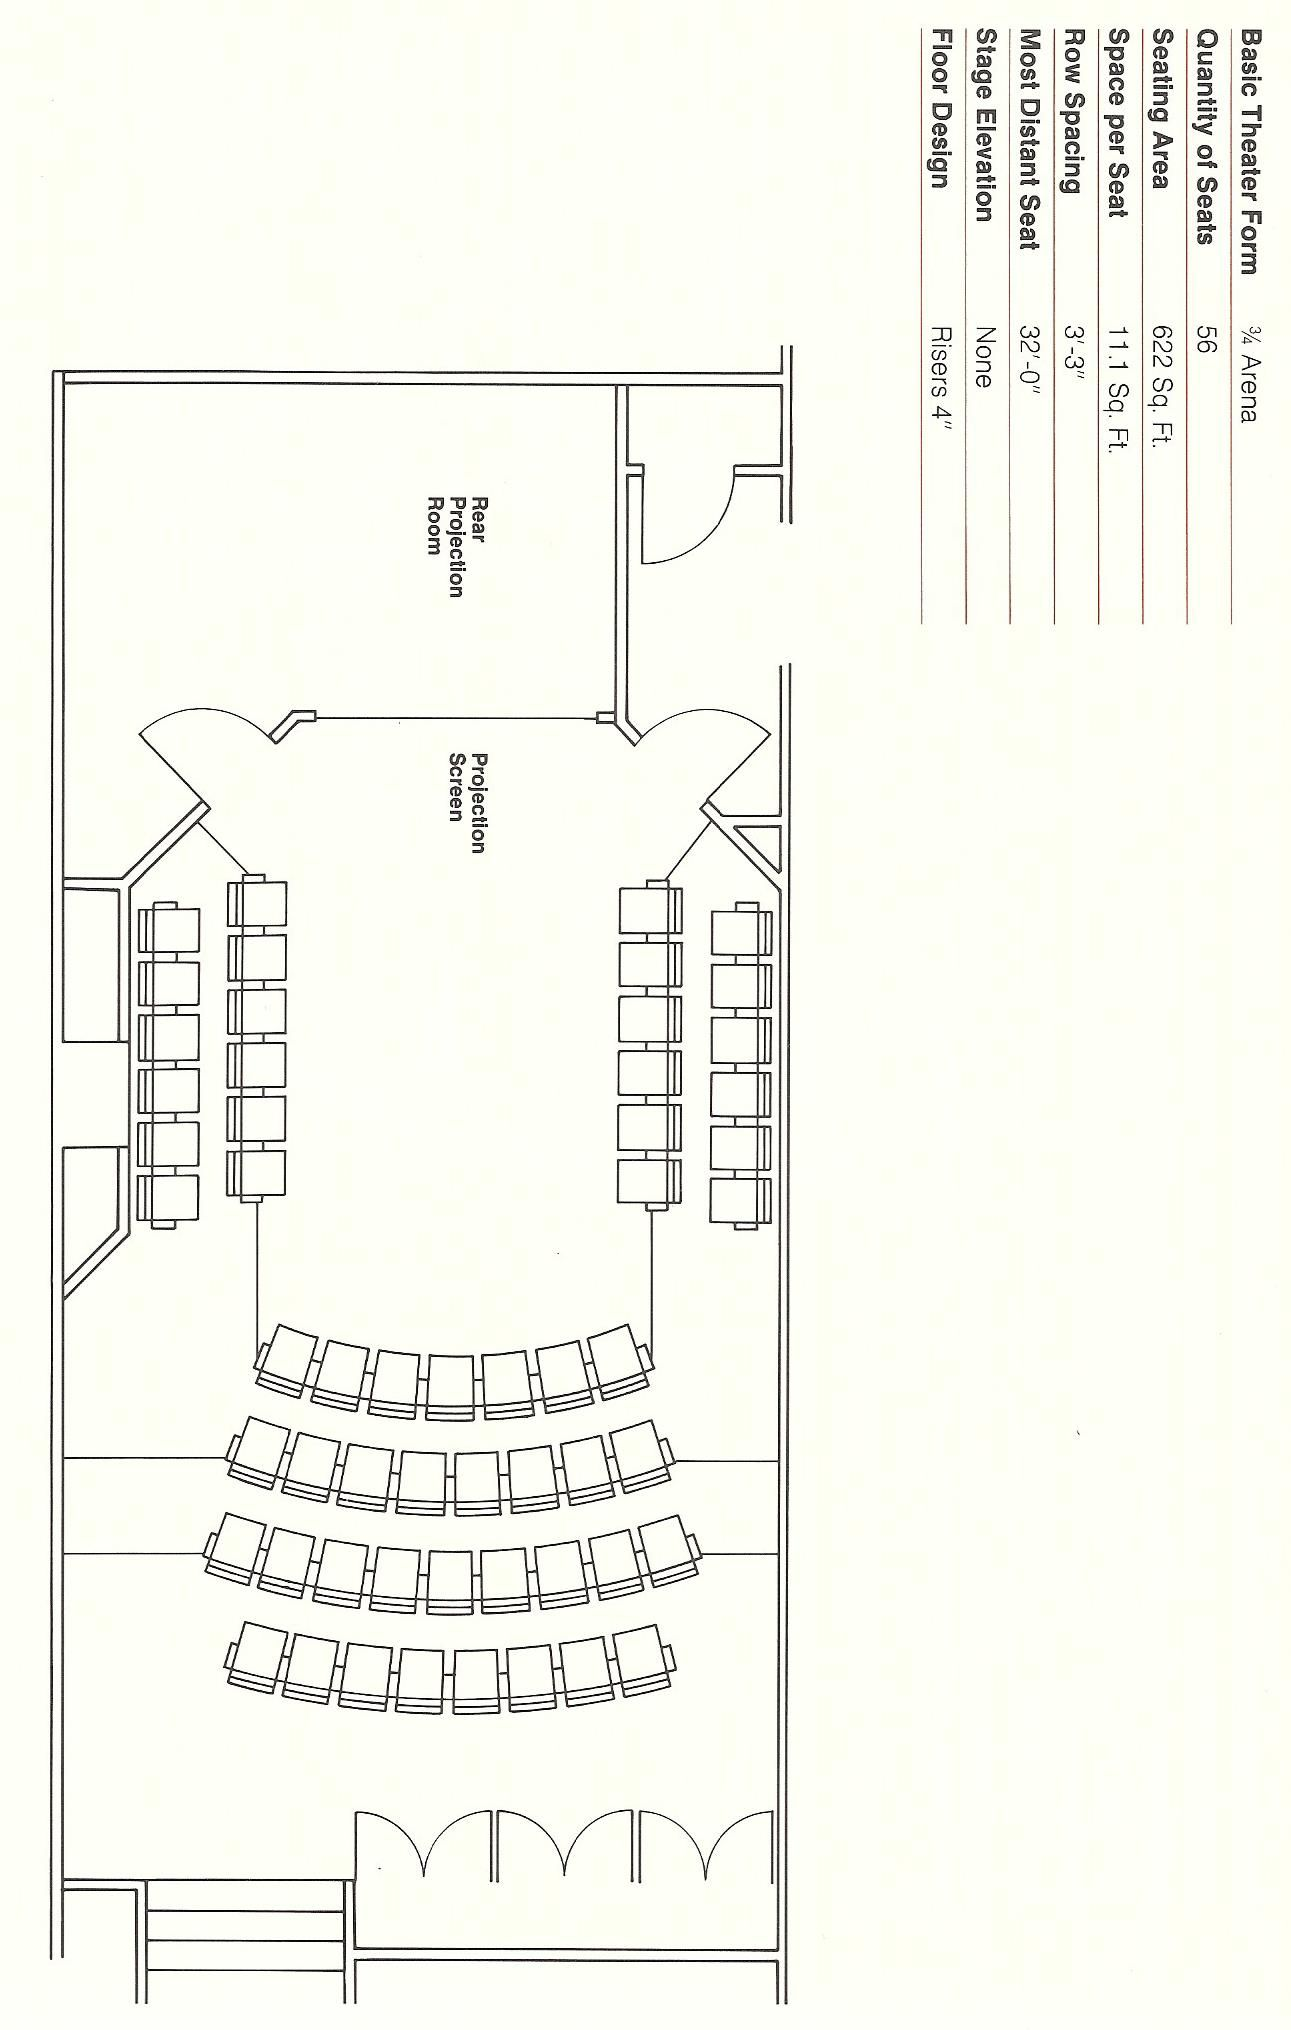 An Auditorium Seating Layout Template